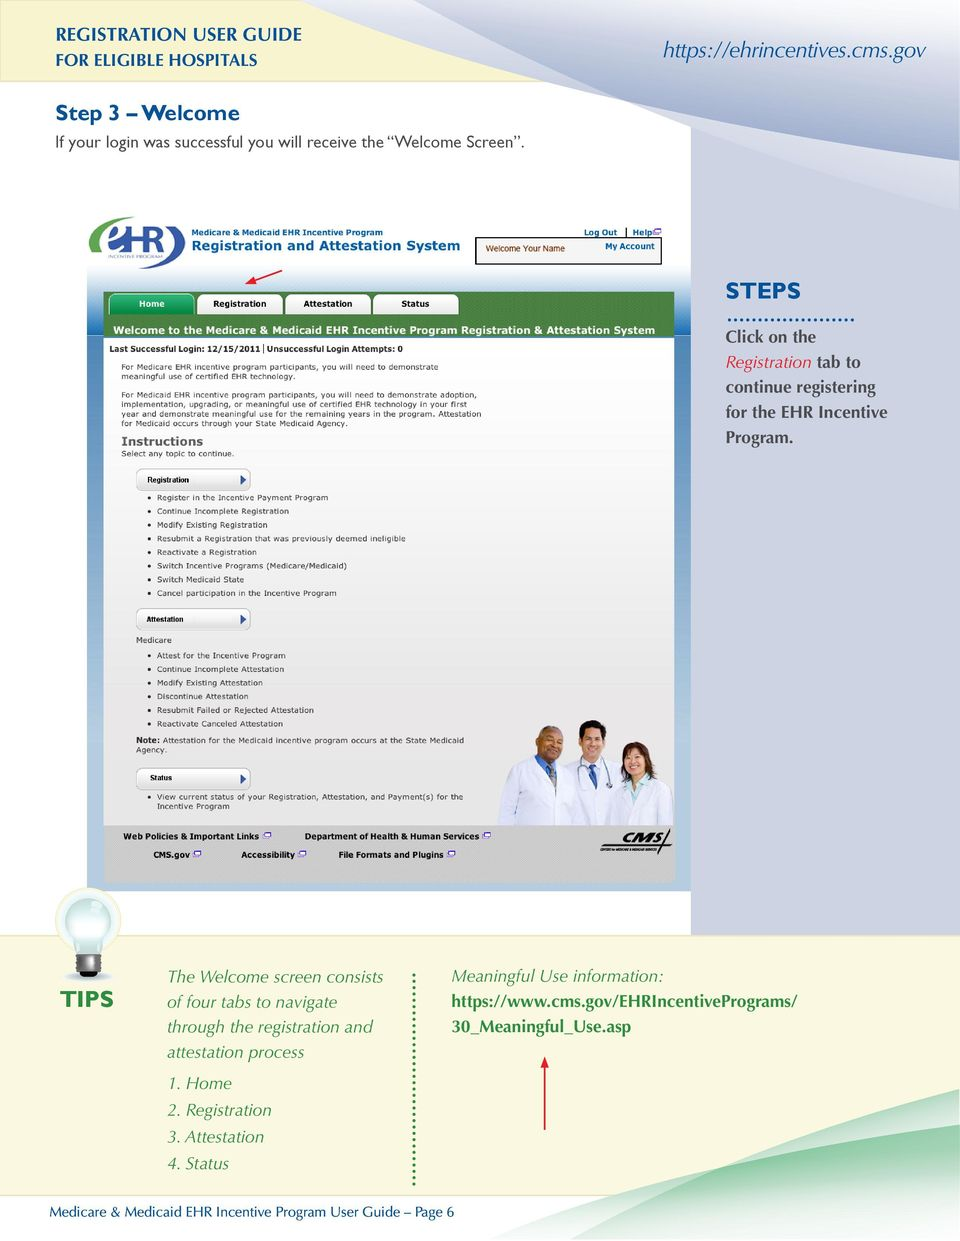 The Welcome screen consists of four tabs to navigate through the registration and attestation process 1. Home 2.